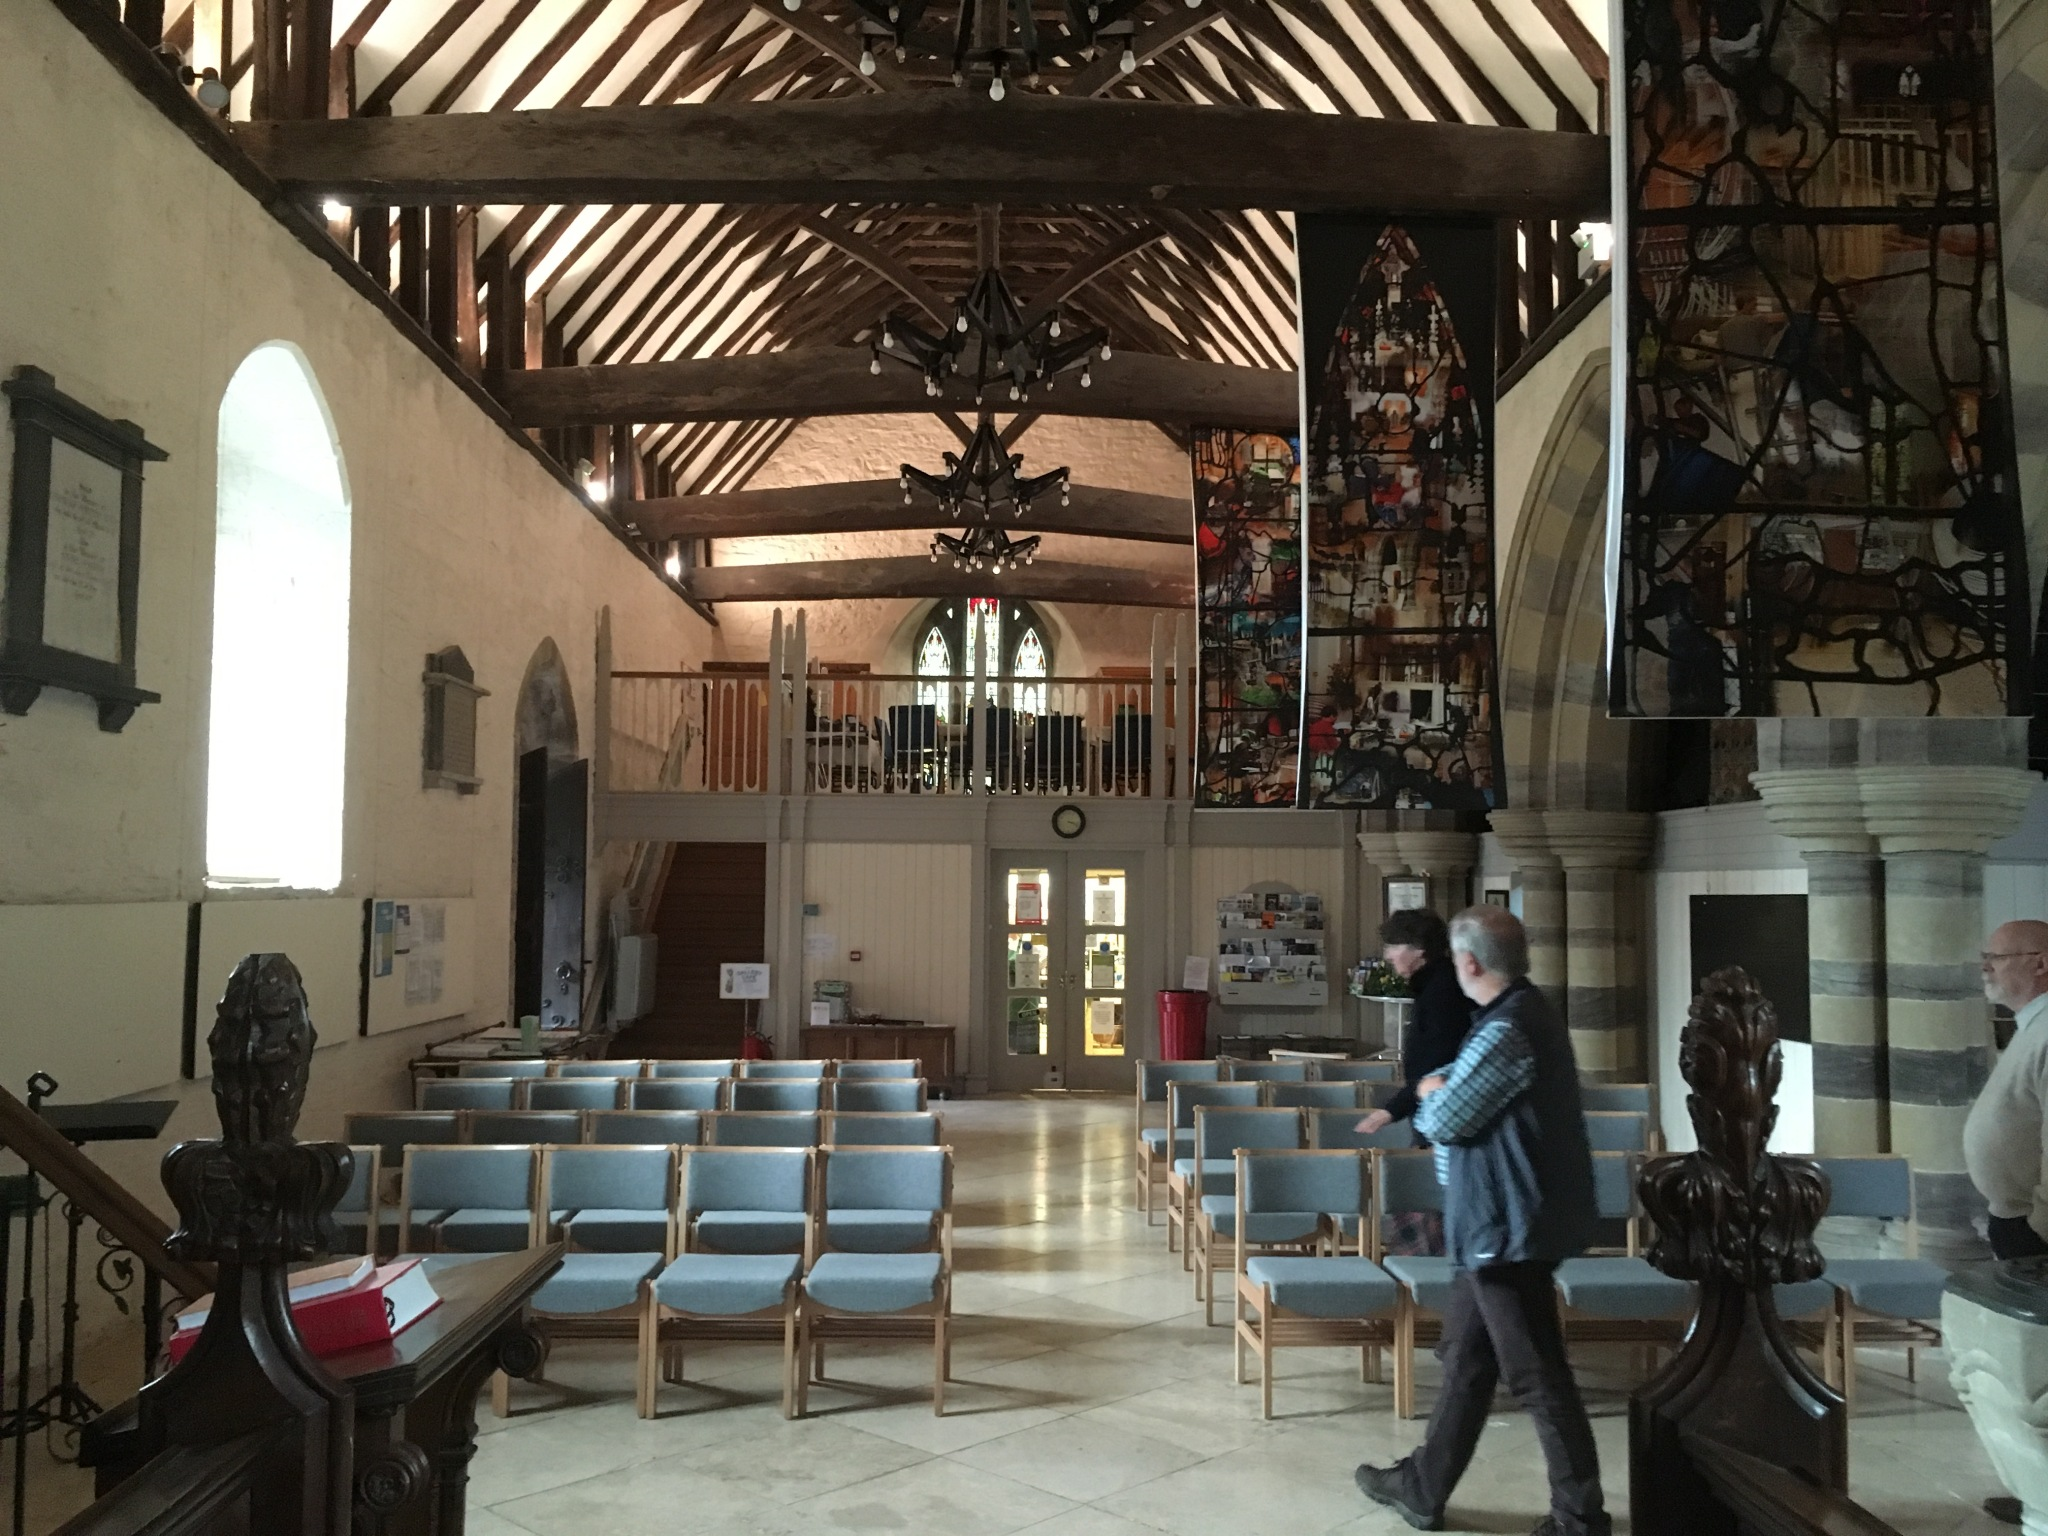 St Leonard's Yarpole gets a new lease of life